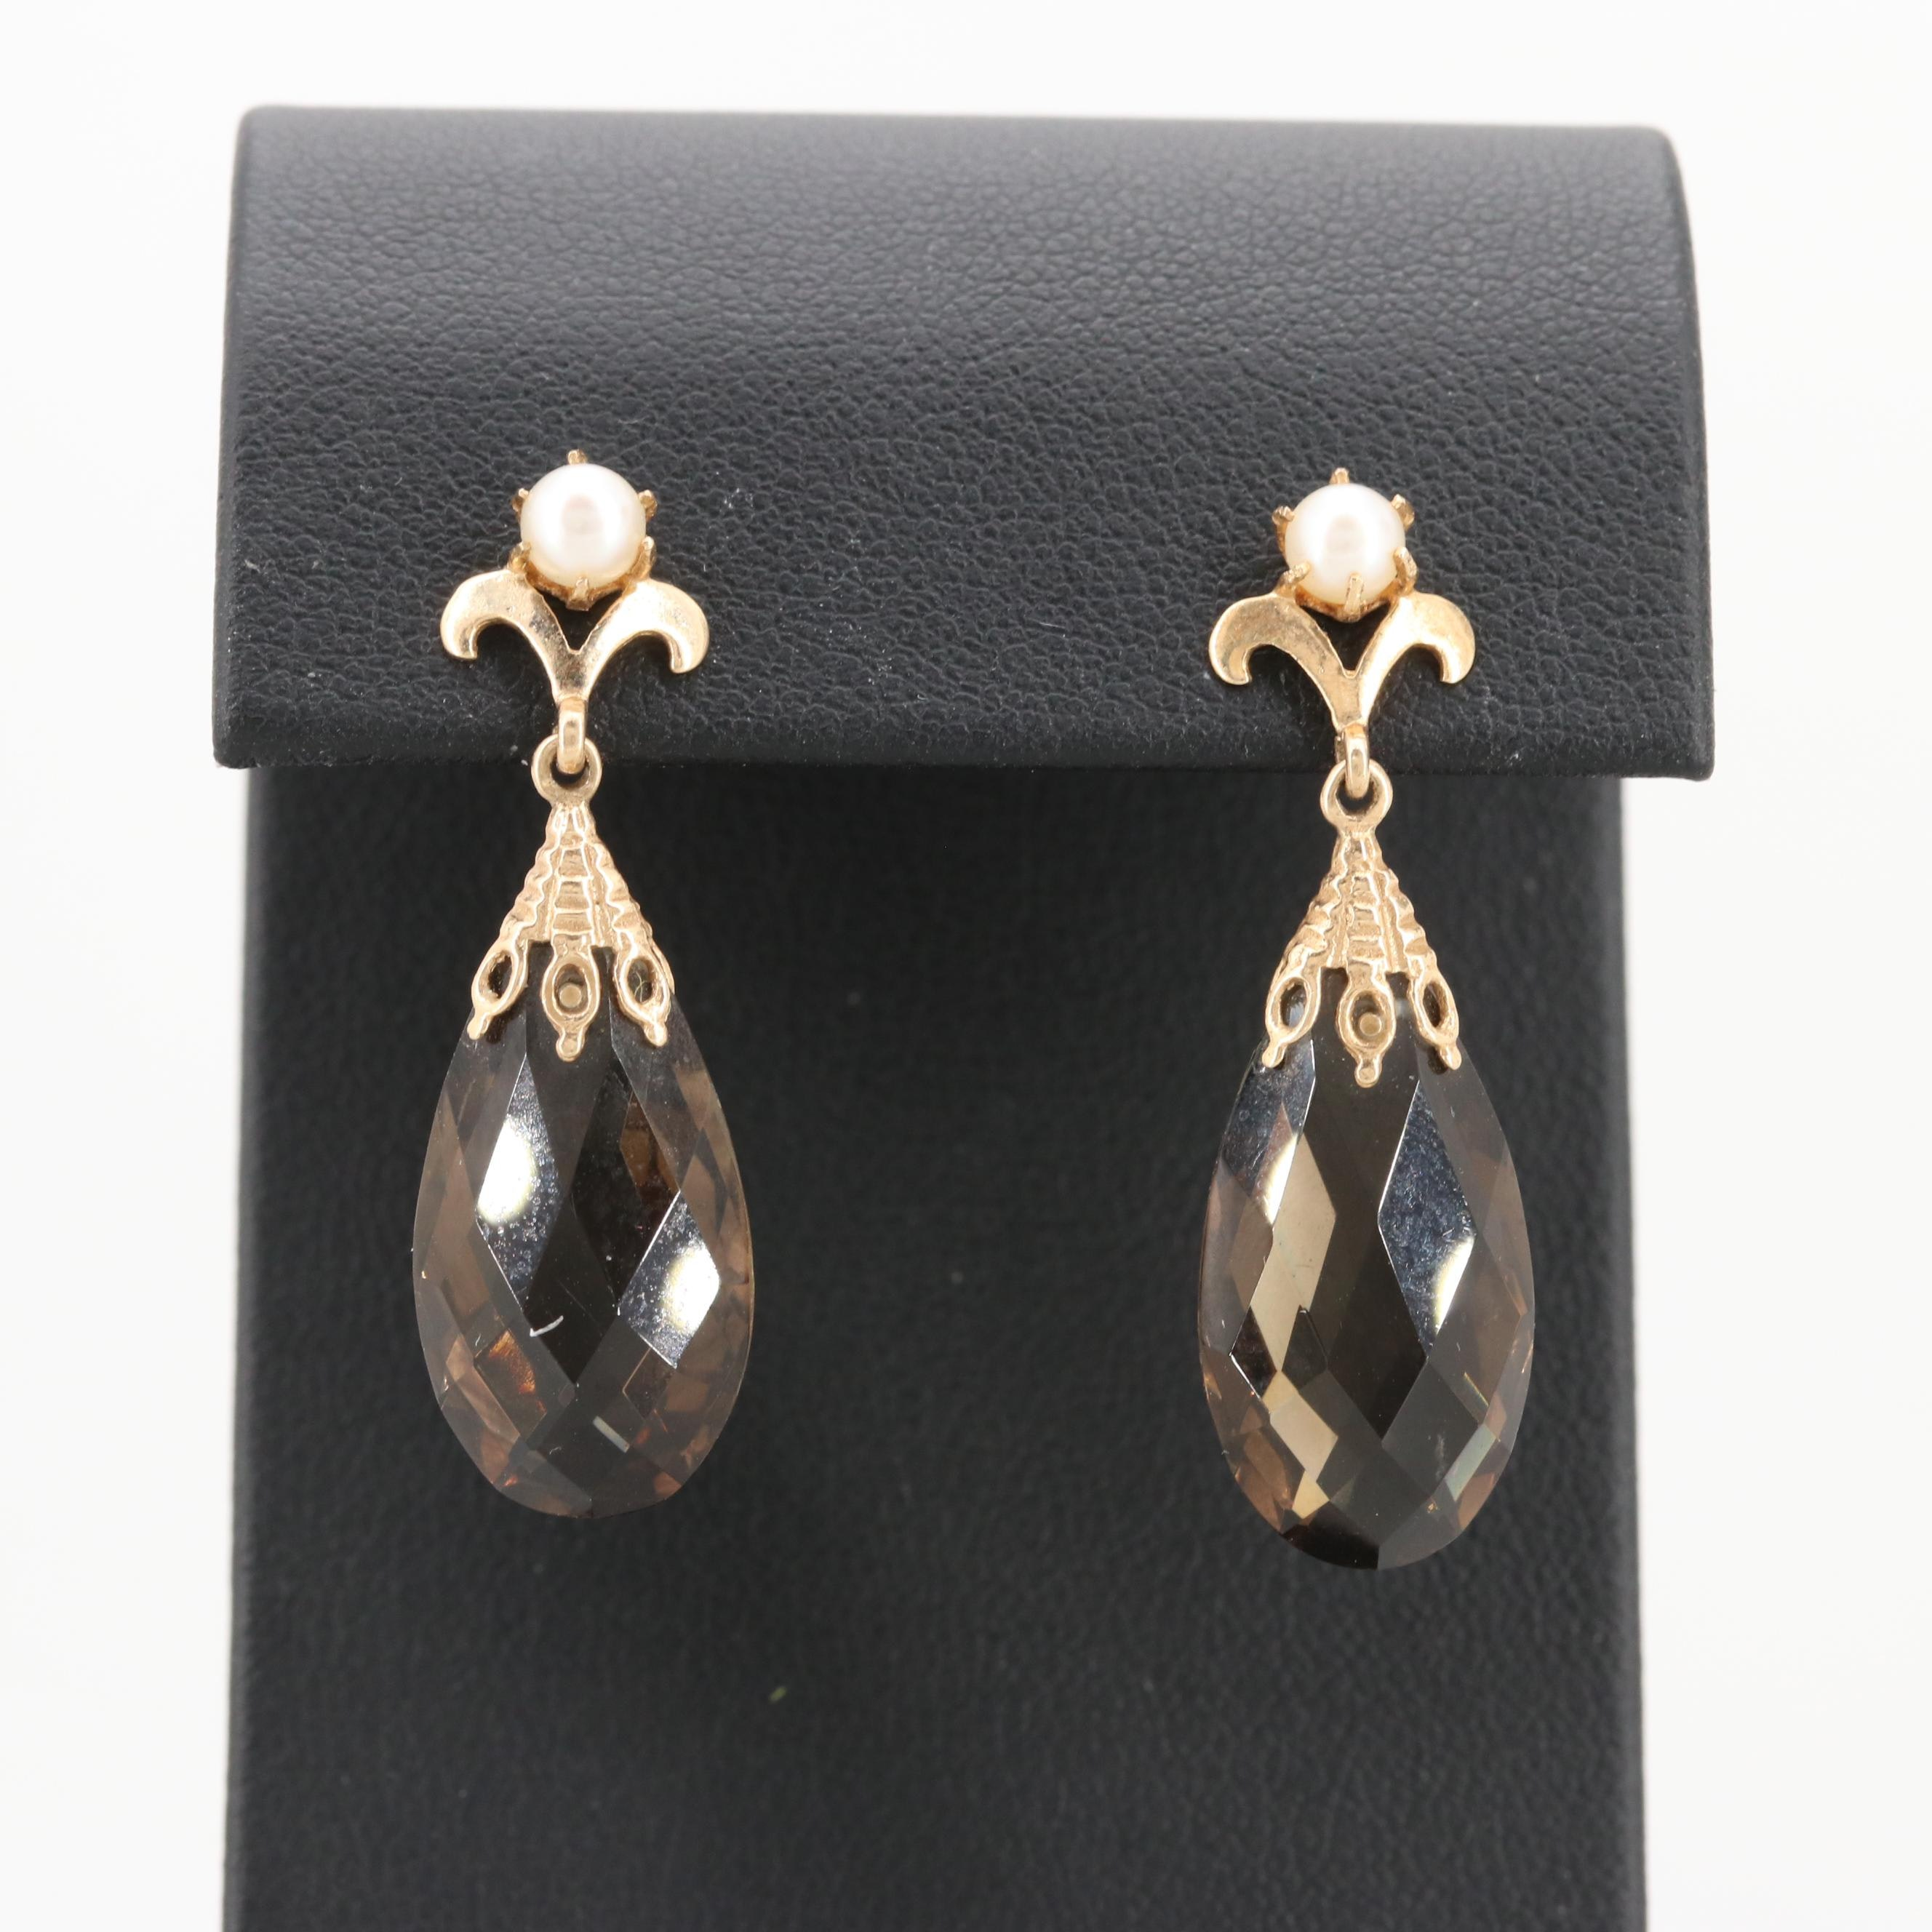 14K Yellow Gold Smoky Quartz and Cultured Pearl Earrings